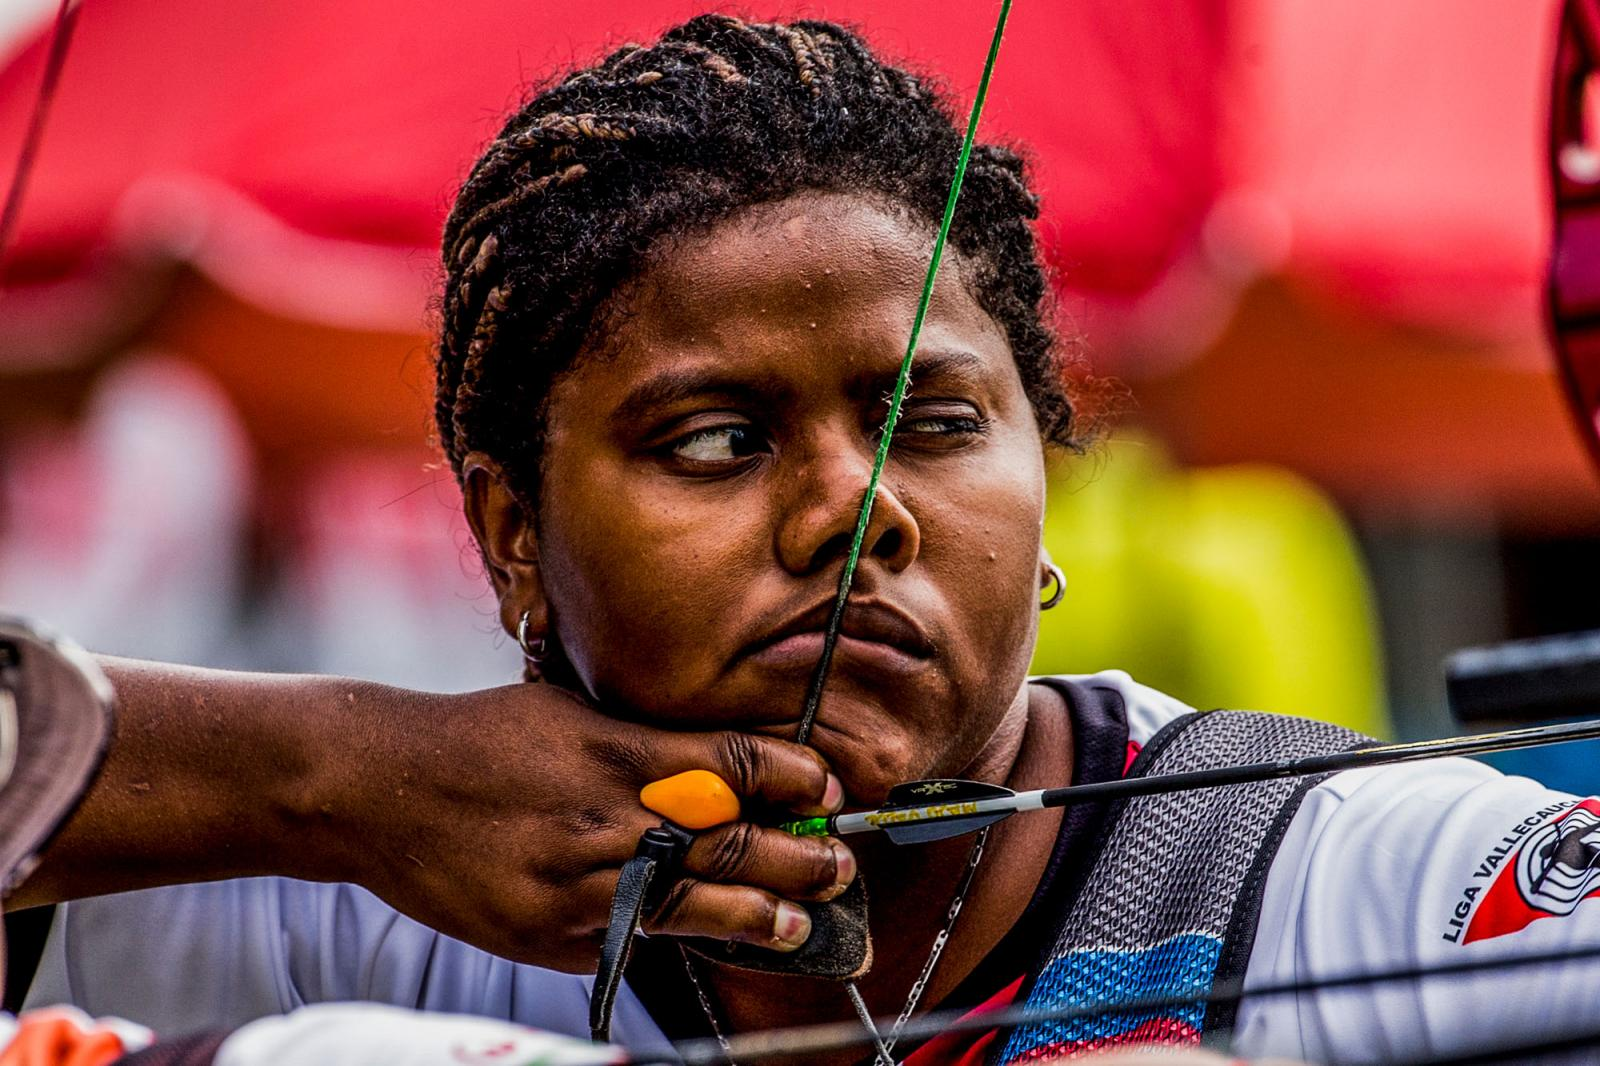 Photography image - Loading (PRESS)1523170_1462230_5_____Jaime_Otoniel_Perez_Munevar__Colombia__Shortlist__Professional_competition__Sport___2019_Sony_World_Photography_Awards.jpg